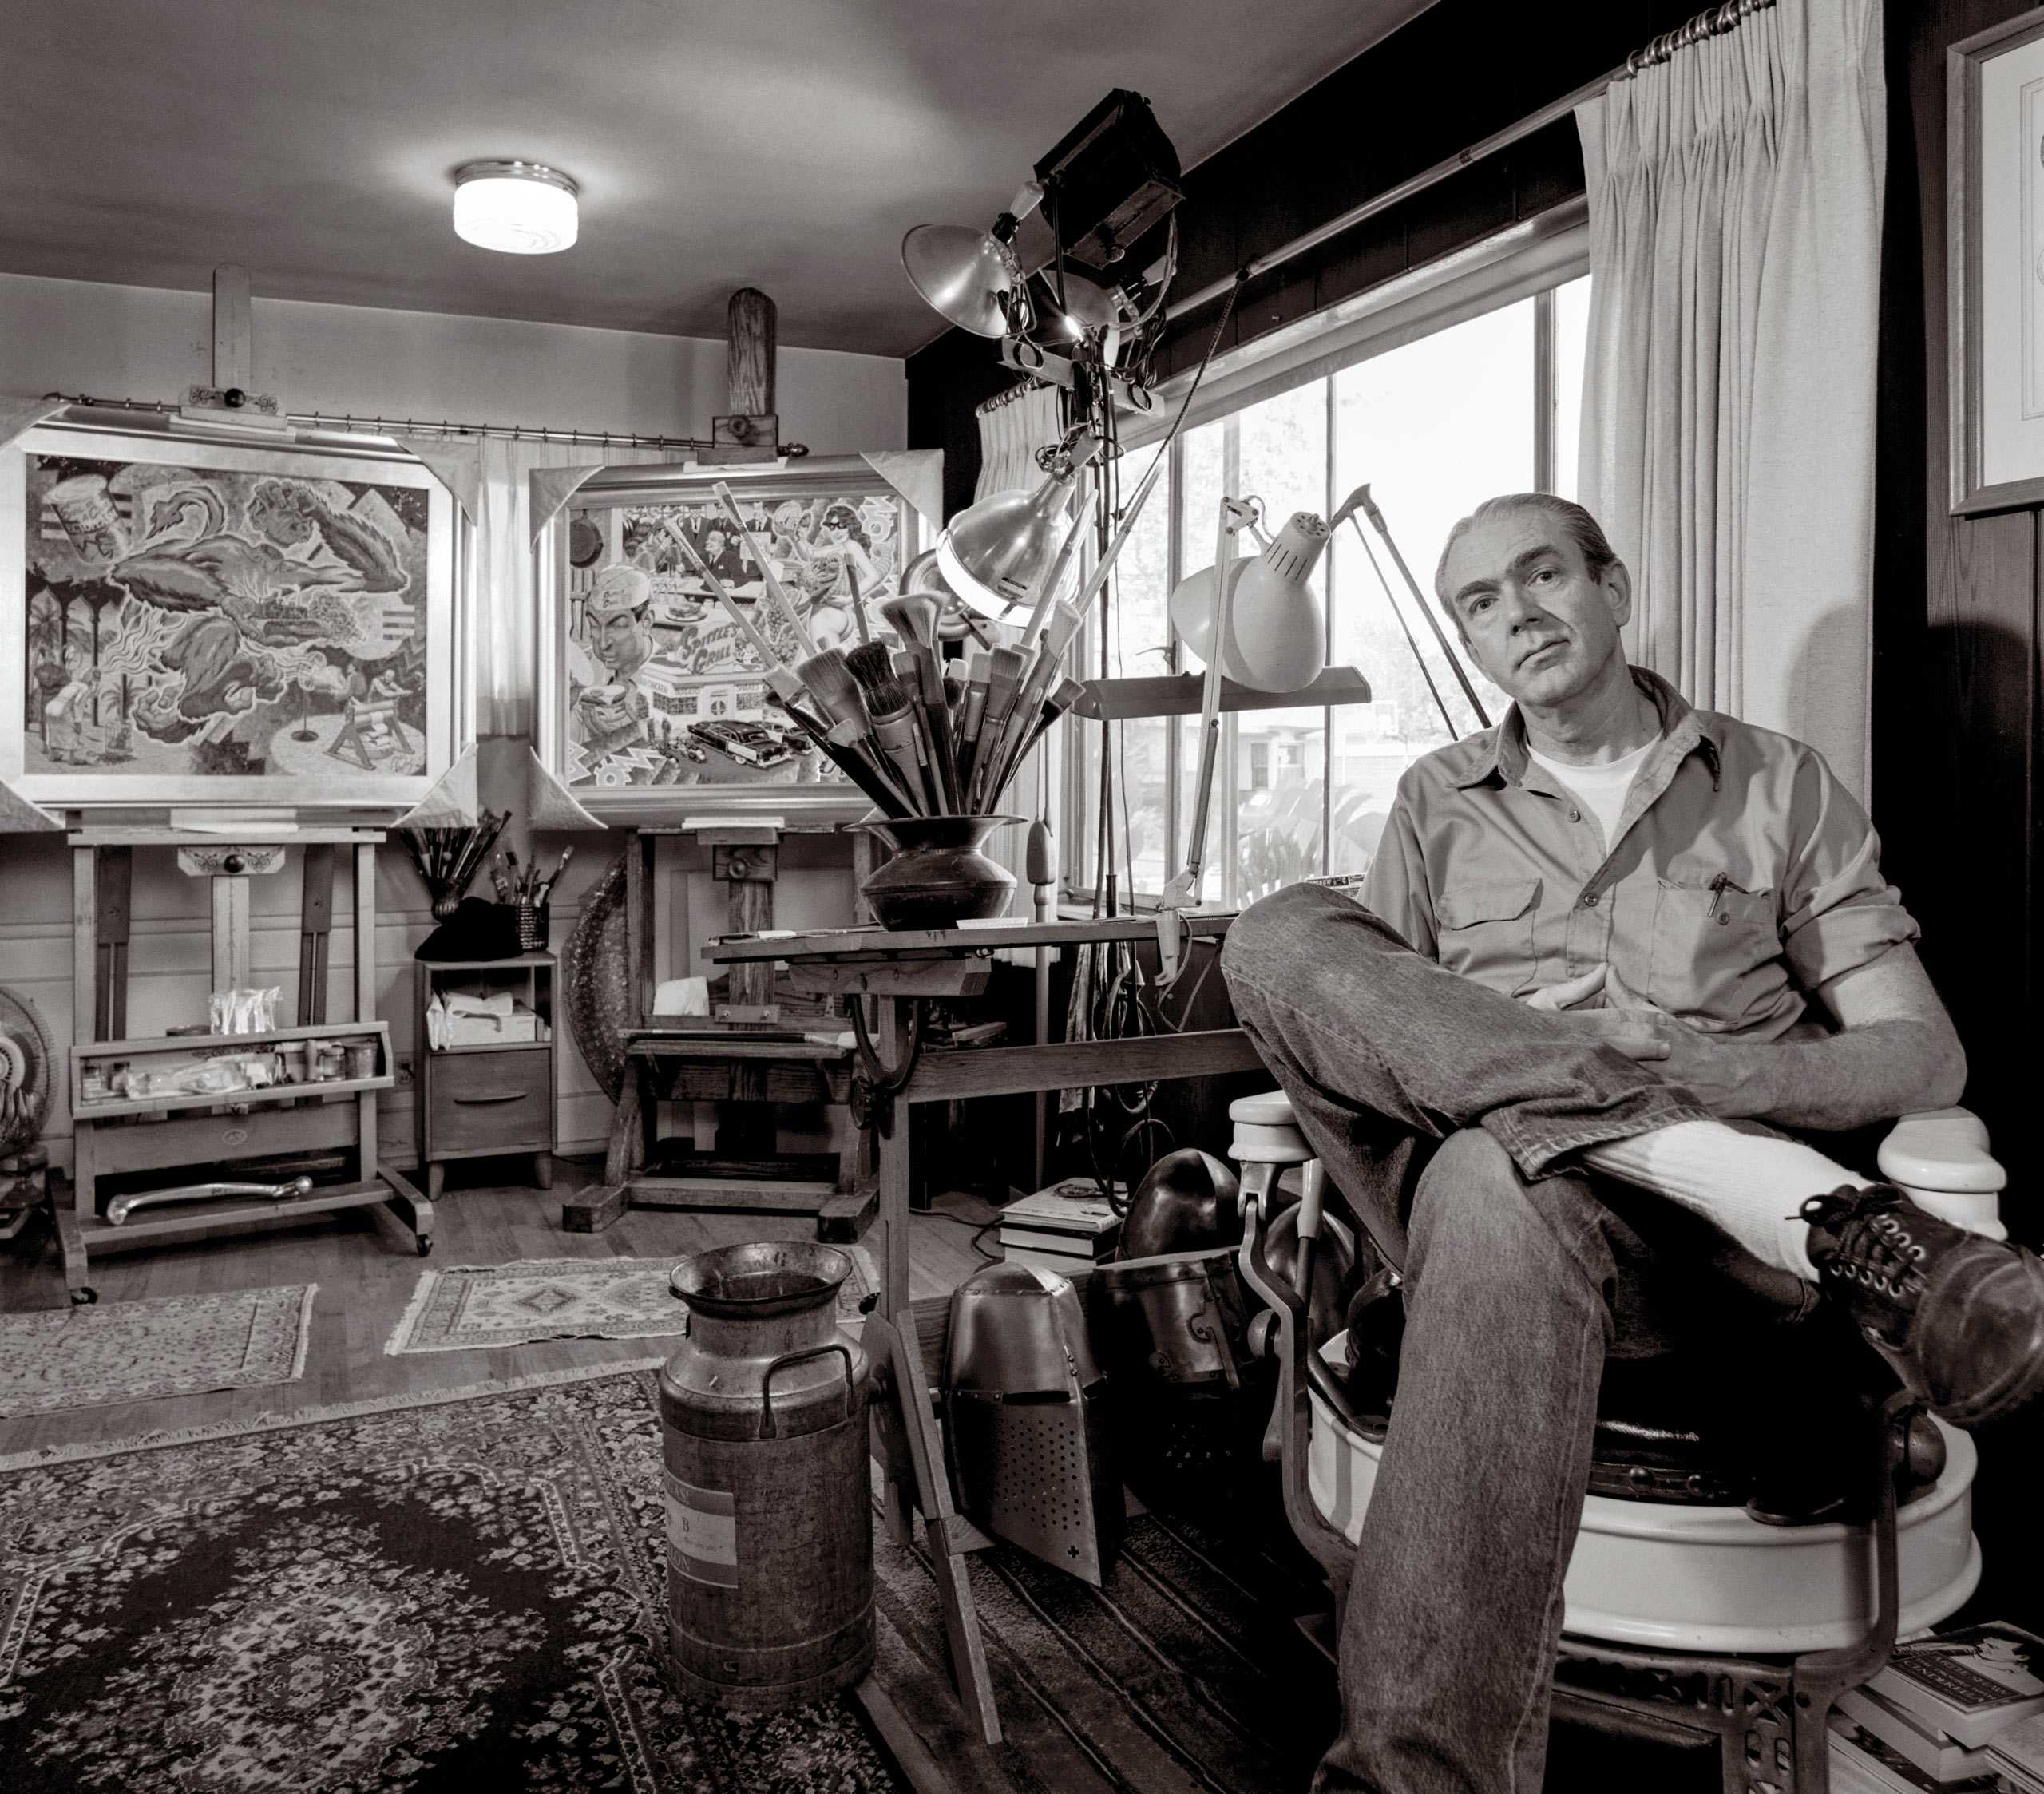 """Cartoonist, Artist, Sculptor Robert Williams Photographed in his studio, Photographed for """"The Artist Within"""""""